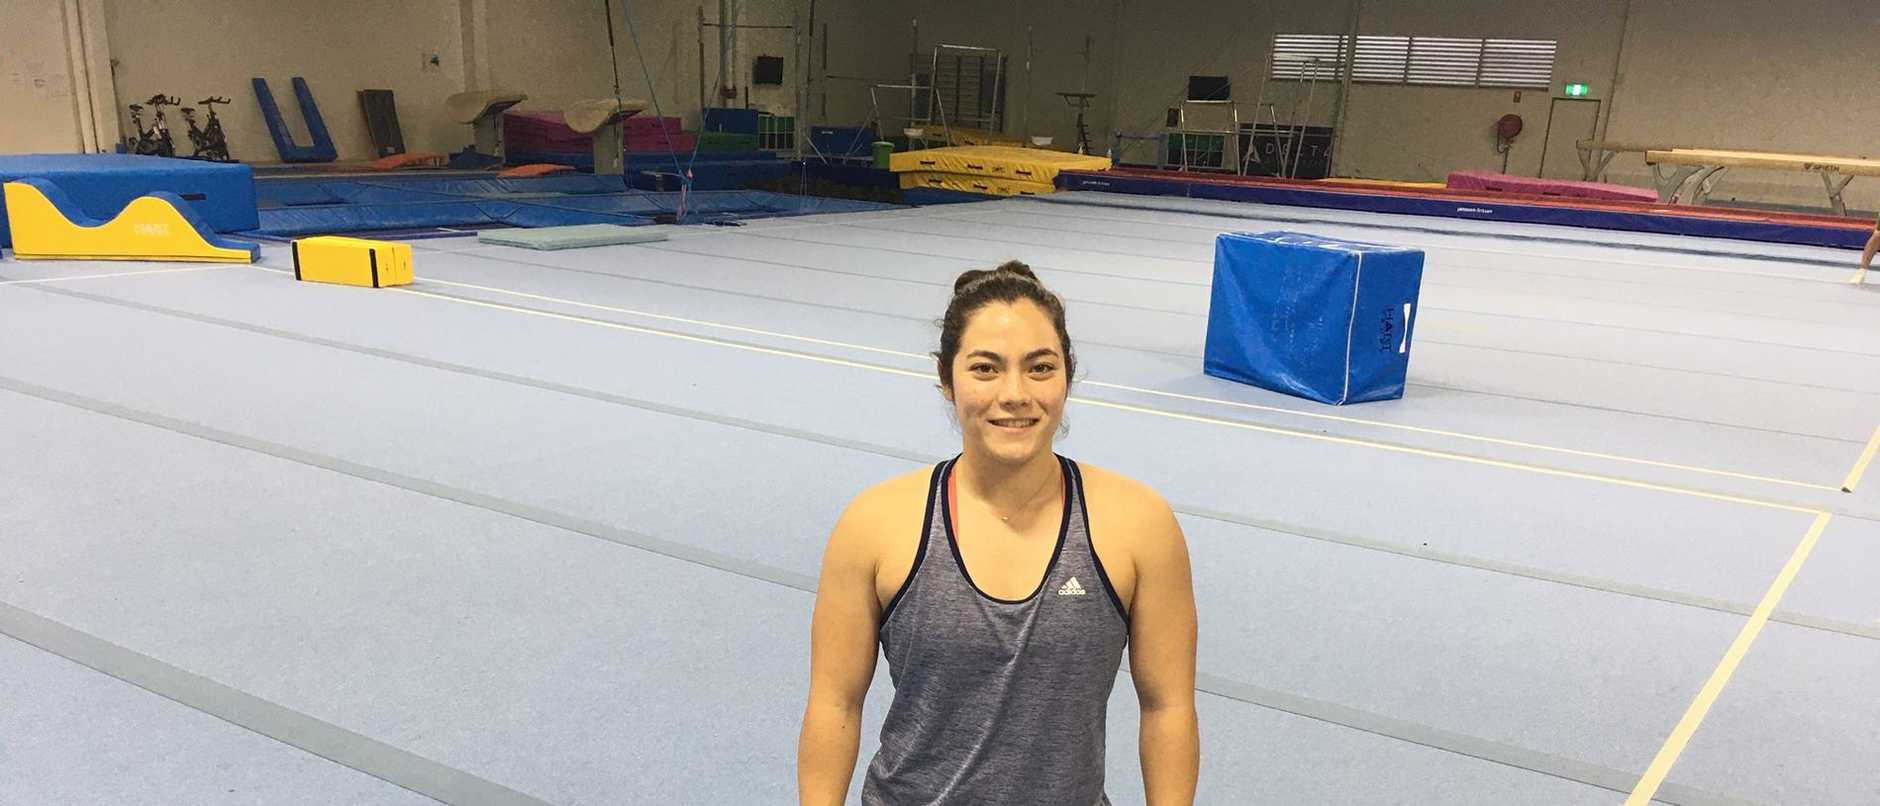 Future Olympic gymnast Georgia Godwin at an empty Delta Gymnastic training base.